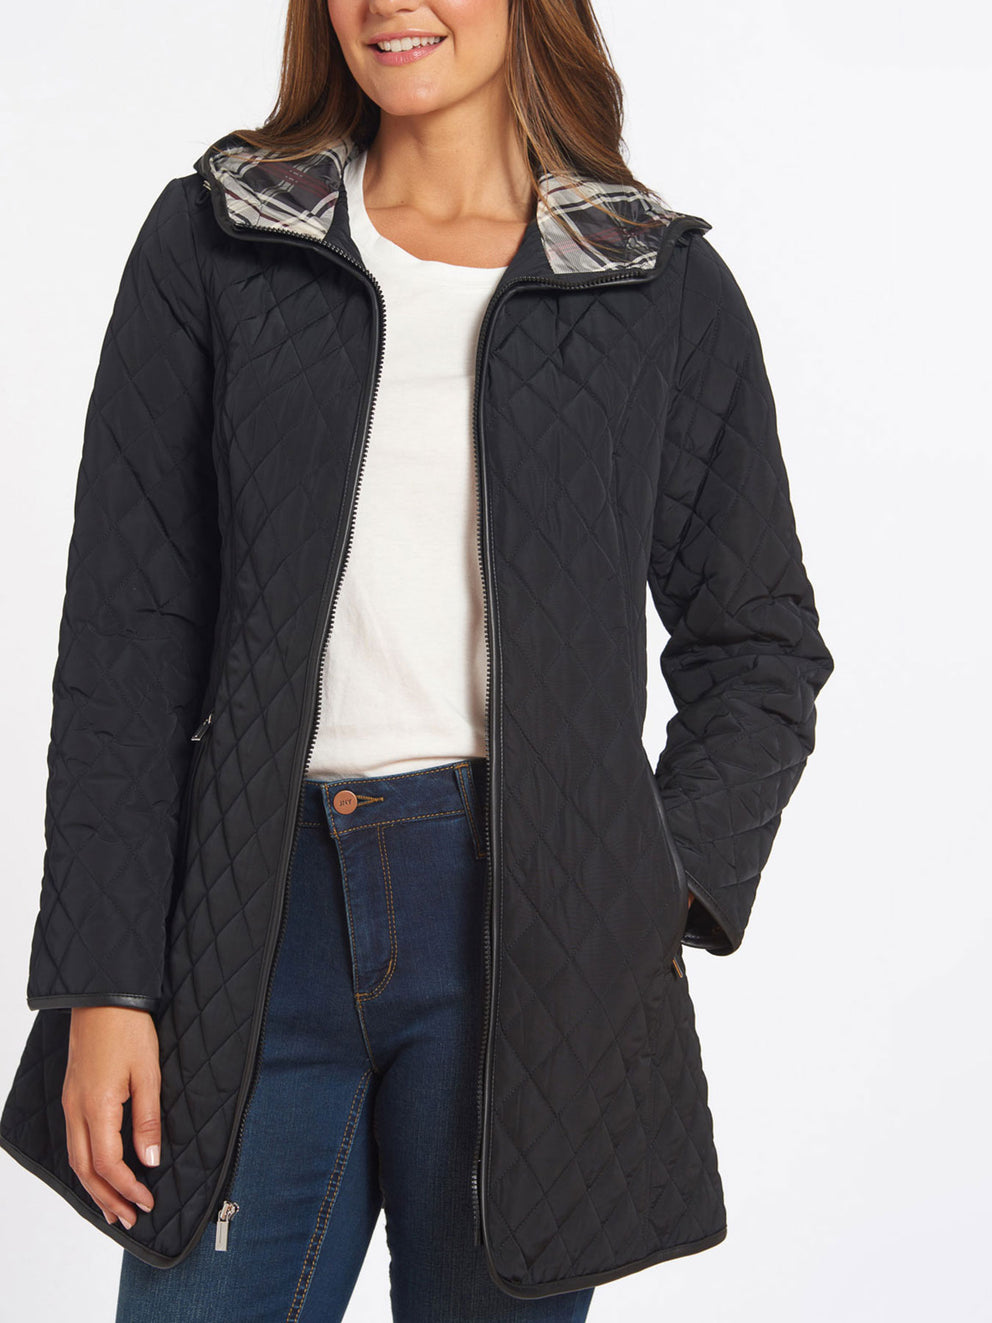 The Jones New York Quilted Princess Line Zip Coat in color Black - Image Position 2